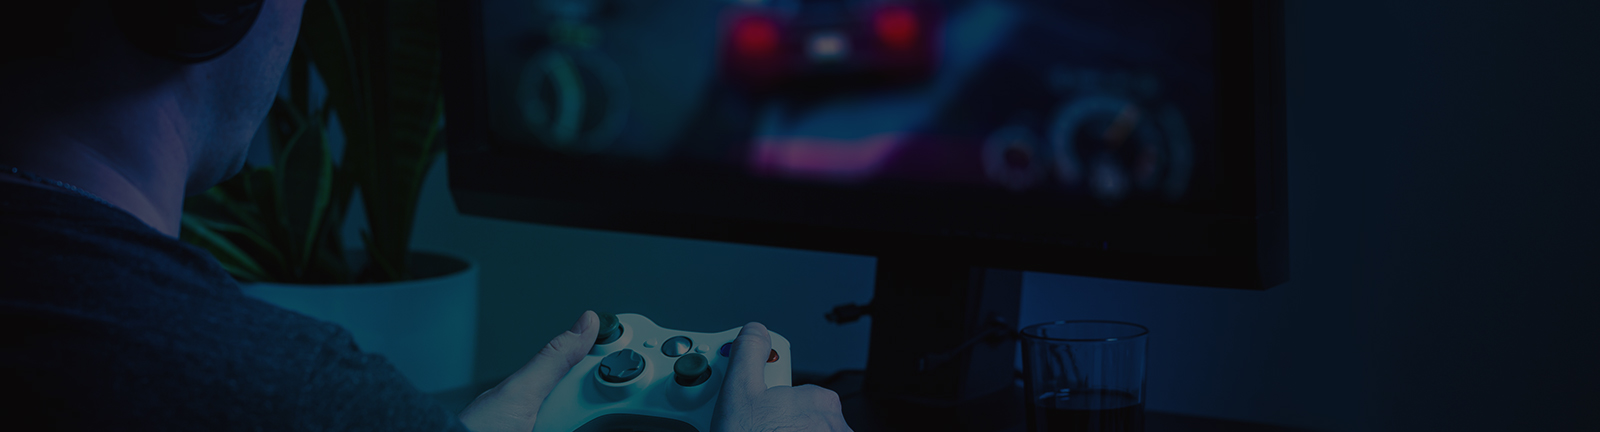 Centralized regulations to drive the growth of India's online gaming industry